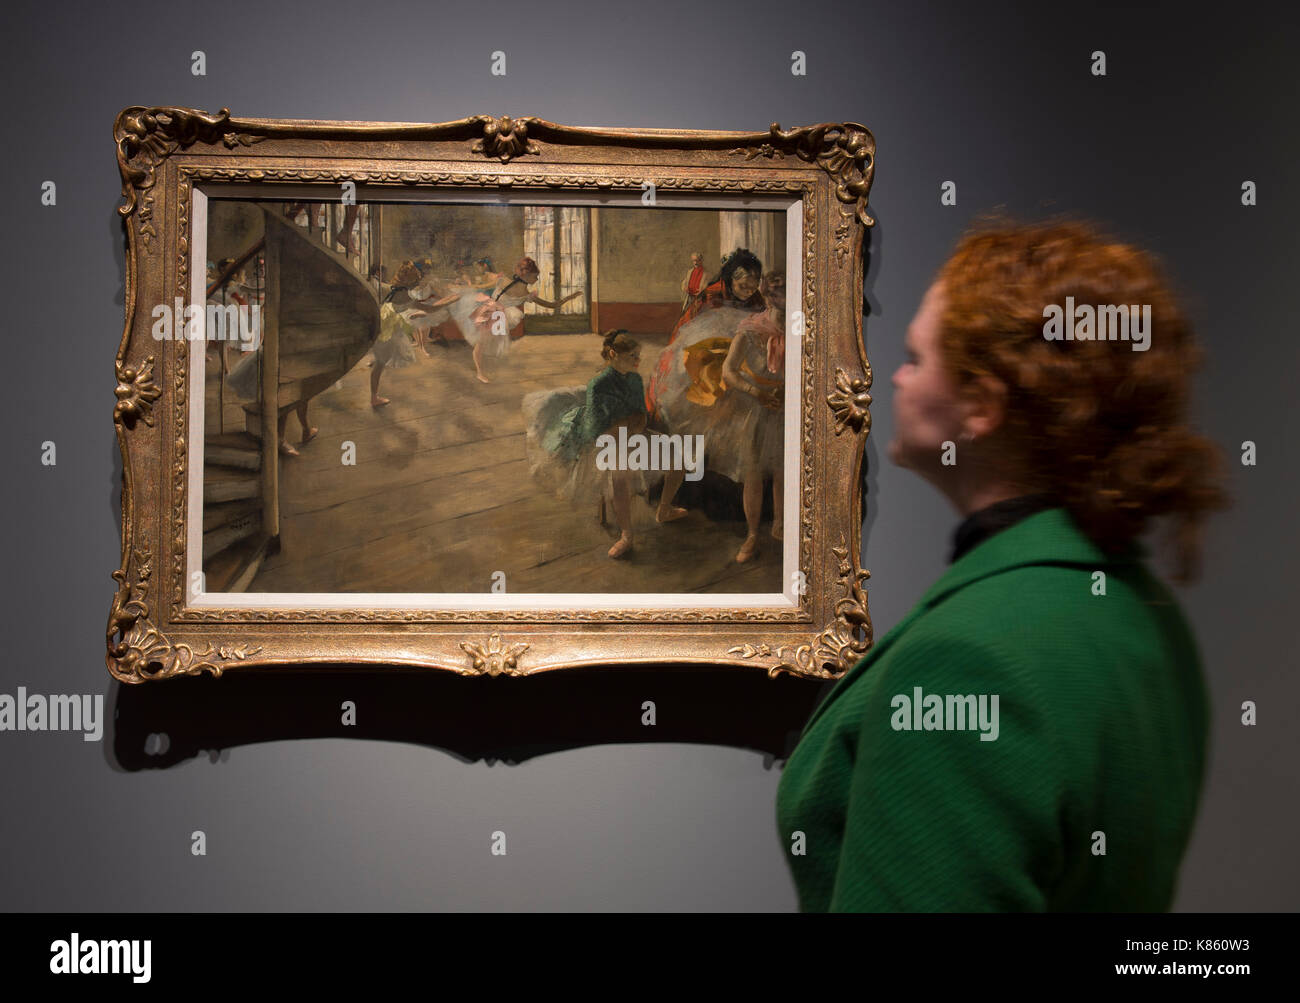 National Gallery, London, UK. 18th Sep, 2017. Degas artworks from the Burrell Collection in Glasgow go on display at the National Gallery from 20 September 2017 - 7 May 2018. Shipping magnate Sir William Burrell gifted his large collection of art, including one of the finest collections of Degas pastels in the world, to the City of Glasgow in 1944. Hilaire-Germain-Edgar Degas. The Rehearsal, about 1874. The Burrell Collection, Glasgow. Glasgow Museums Collection. Viewed by a member of Gallery staff. Credit: Malcolm Park/Alamy Live News. - Stock Image